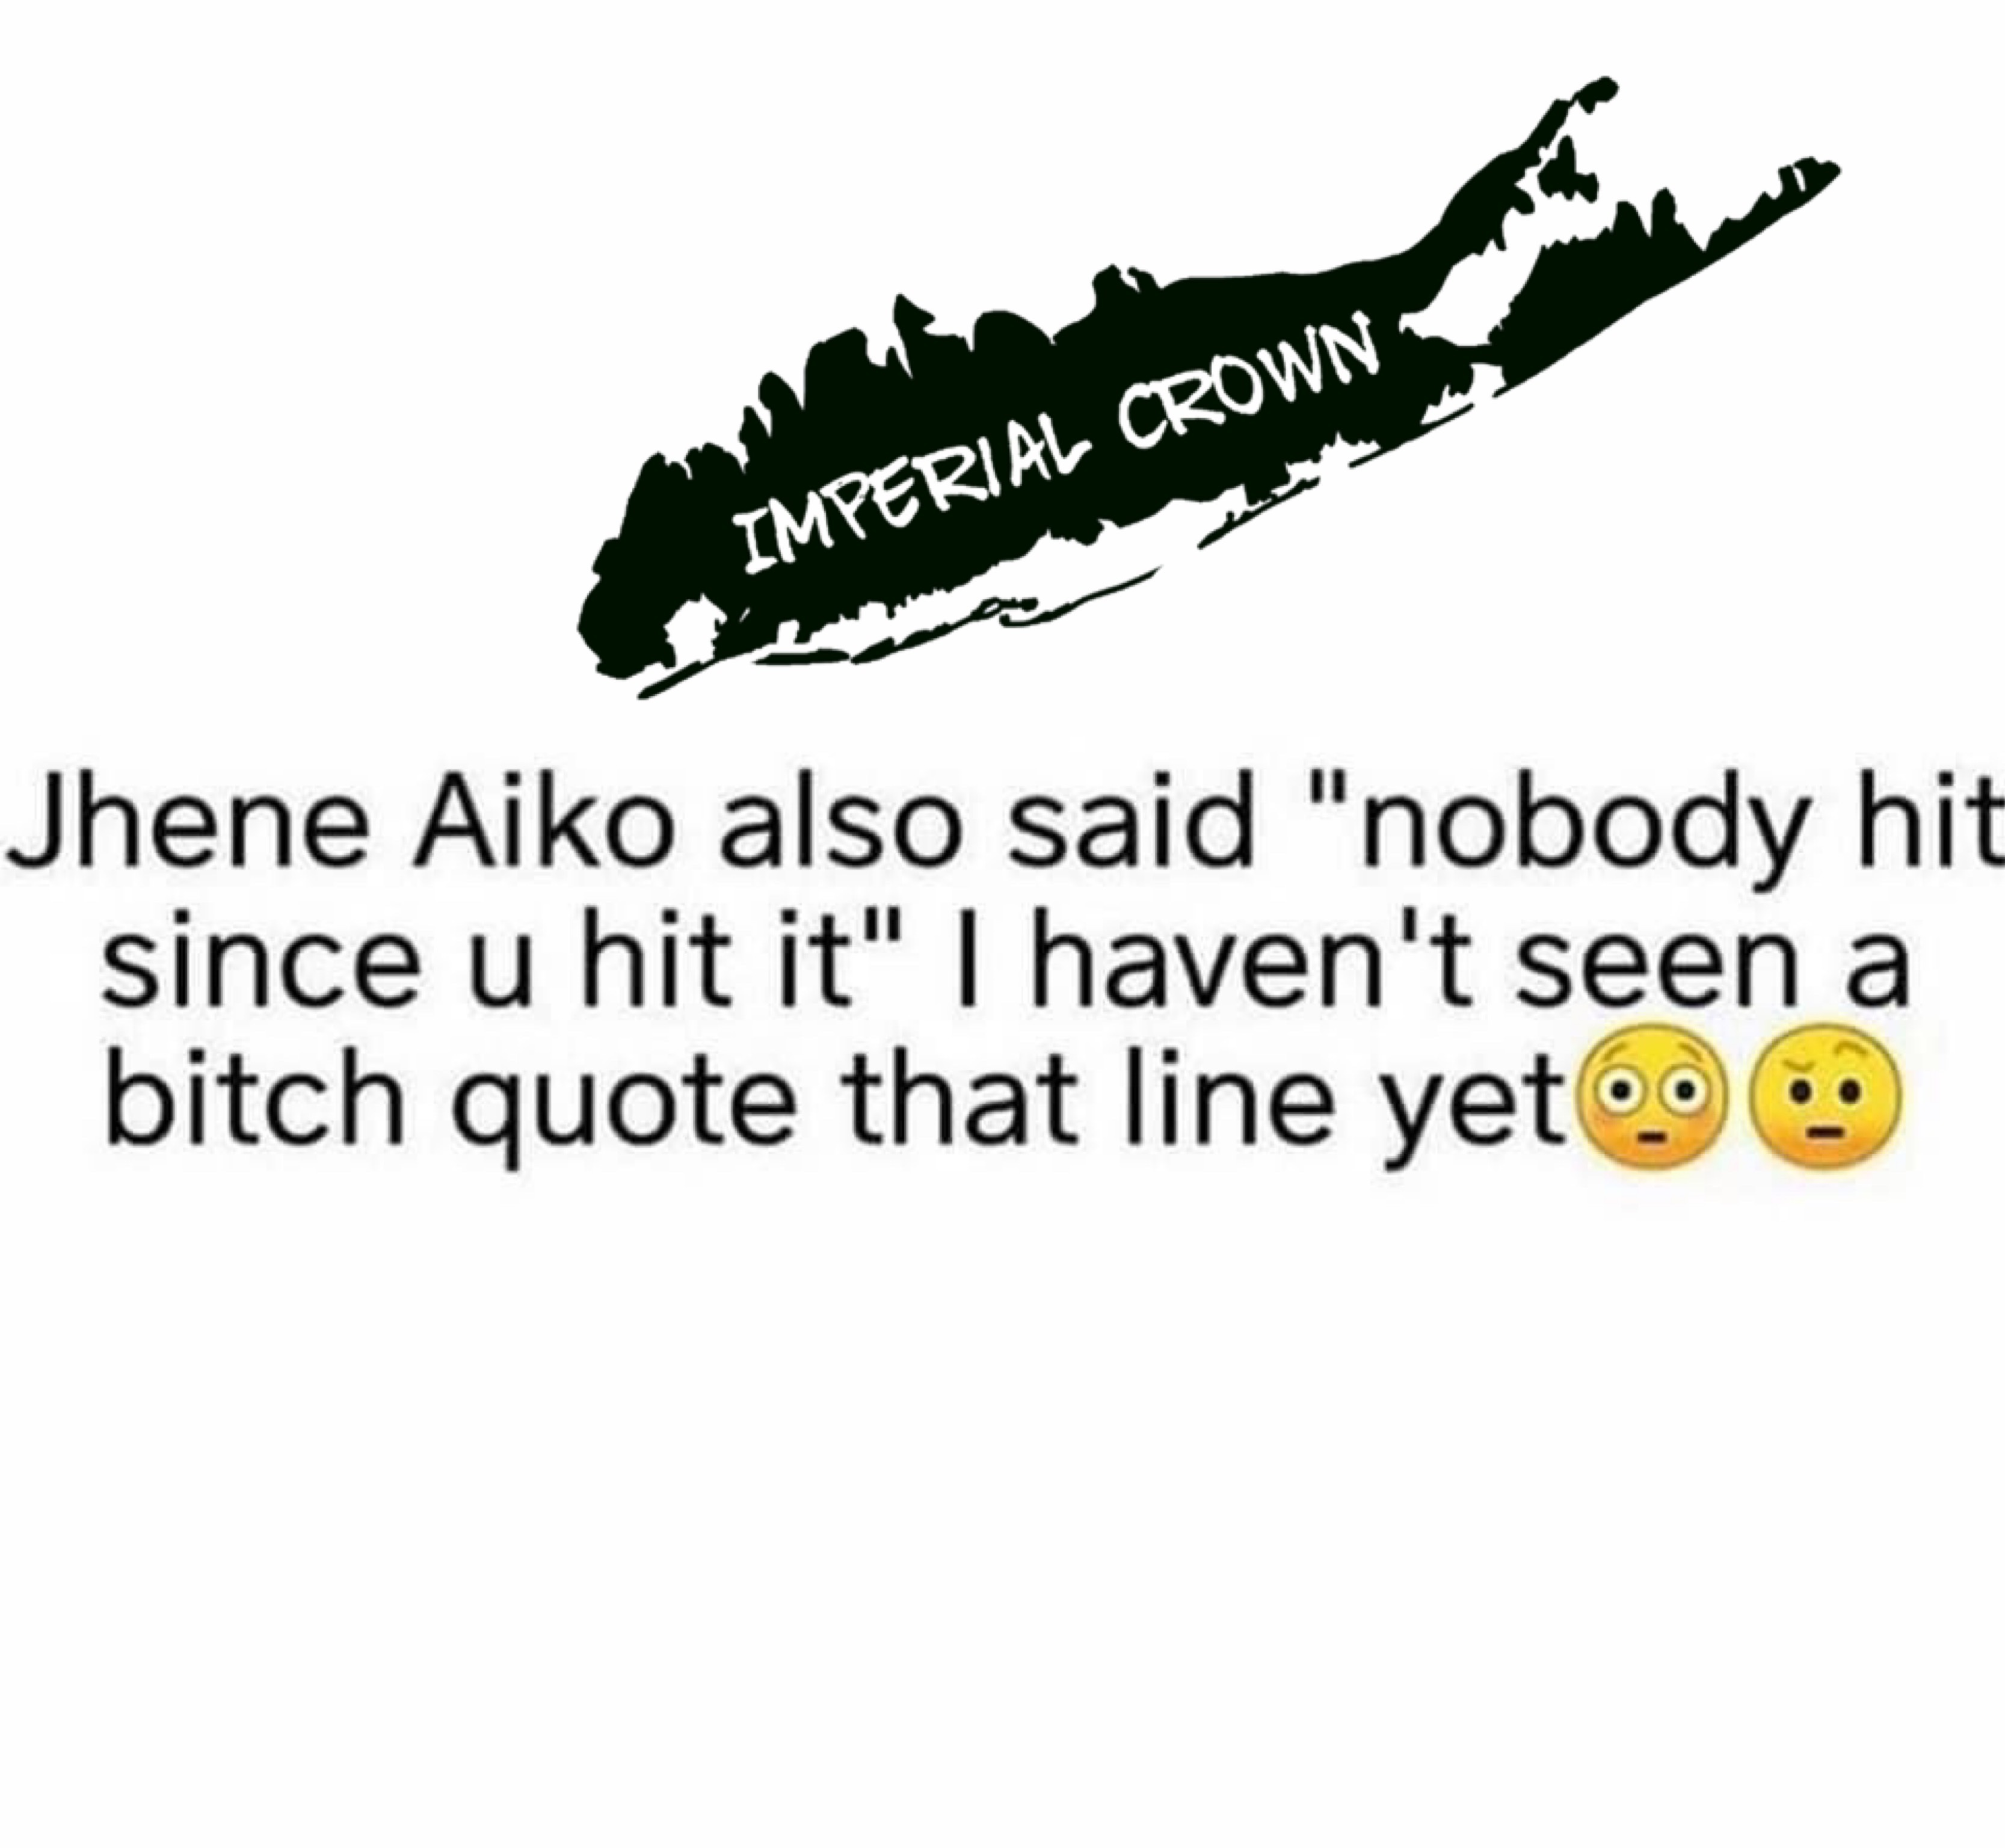 Jhene Aiko also said nobody hit since u hit it I haven't seen a bitch quote that line yet